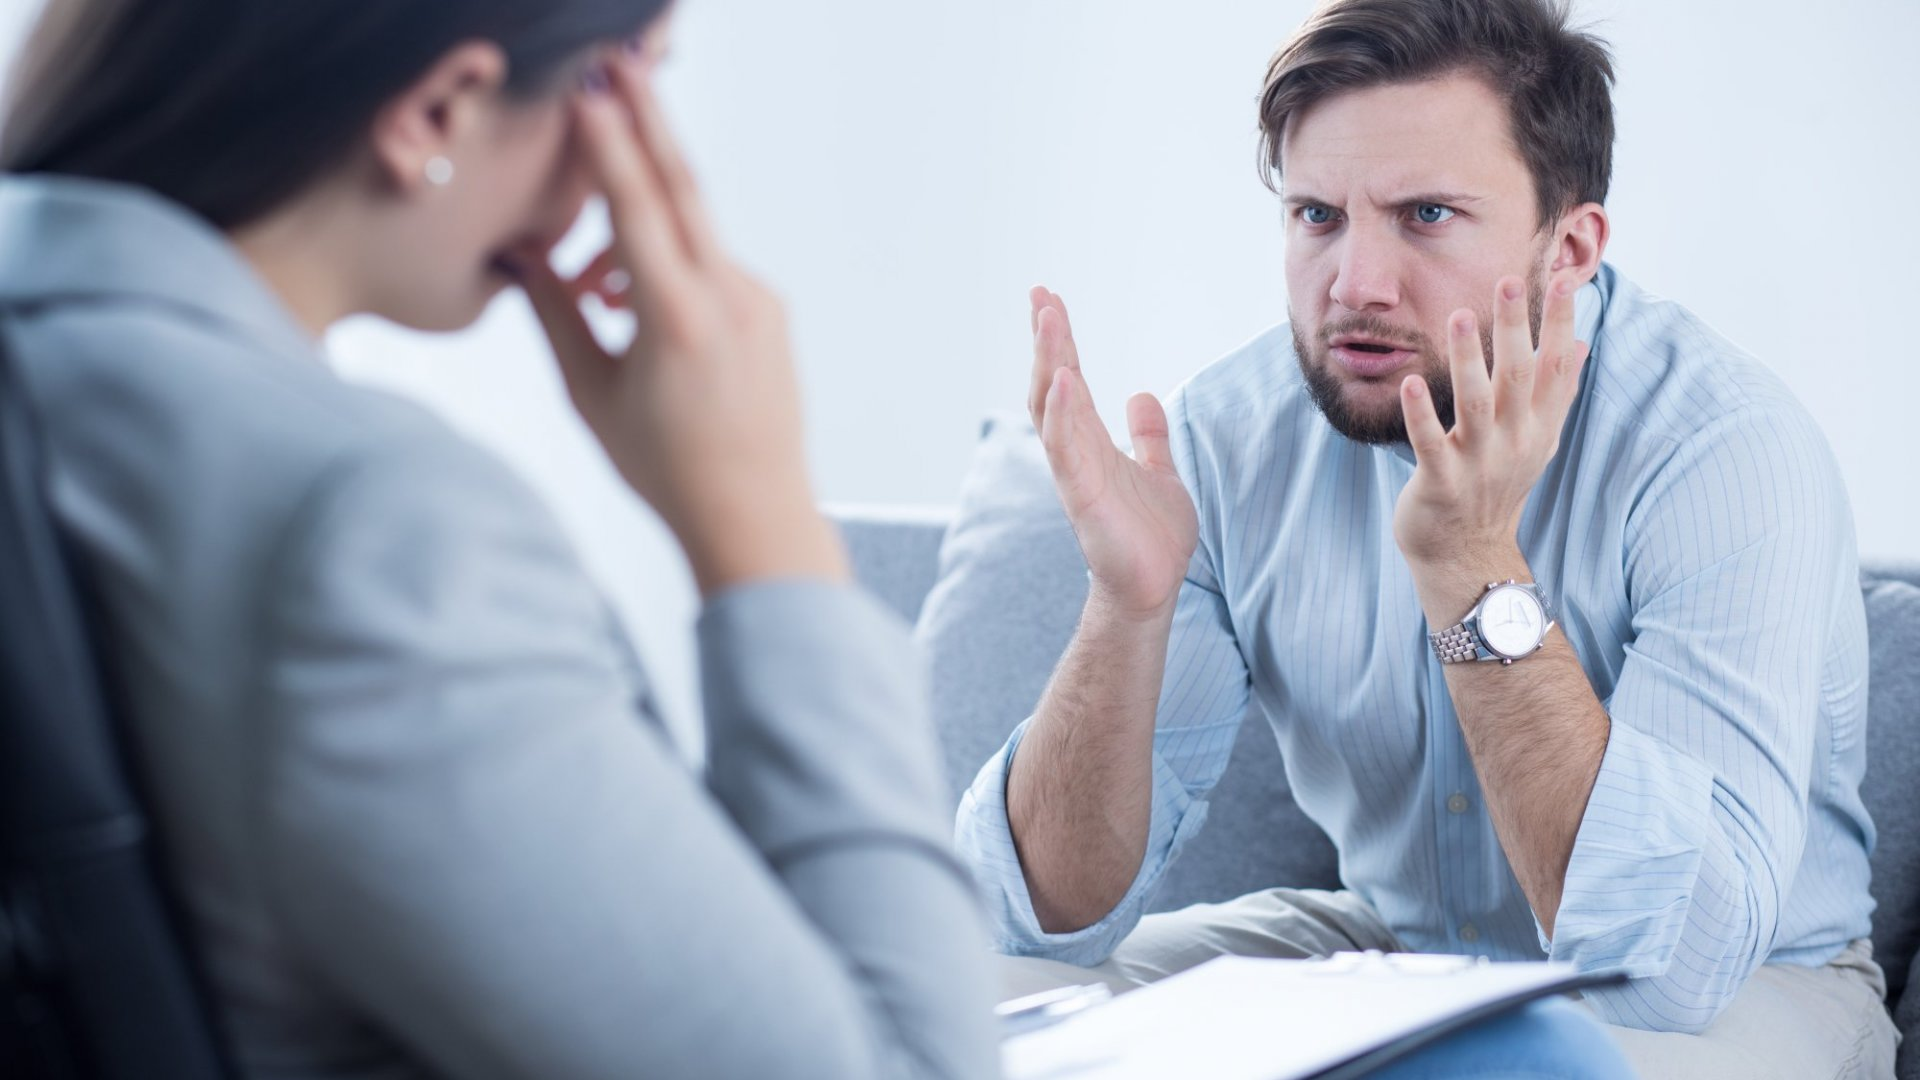 A Simple 3-Step Guide to Deal With a Co-Worker Who Complains Too Much